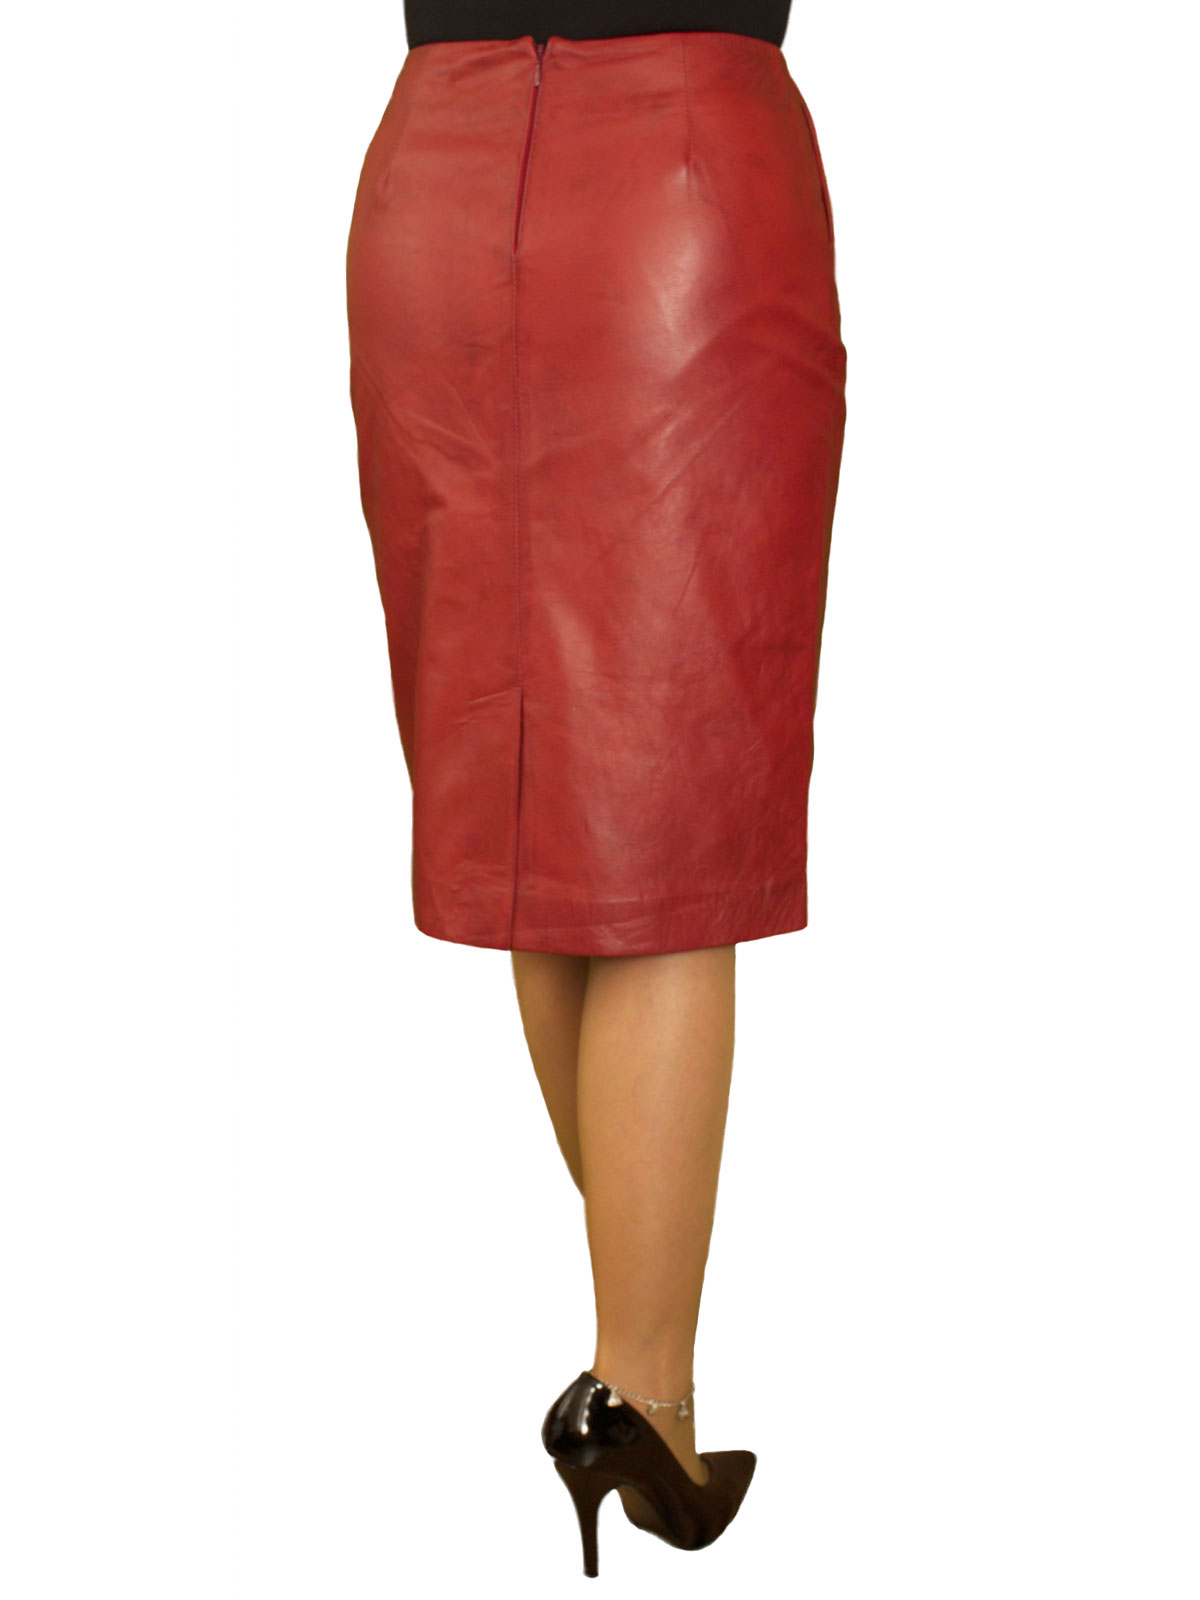 Leather Pencil Skirt, luxury soft, knee length - Tout Ensemble